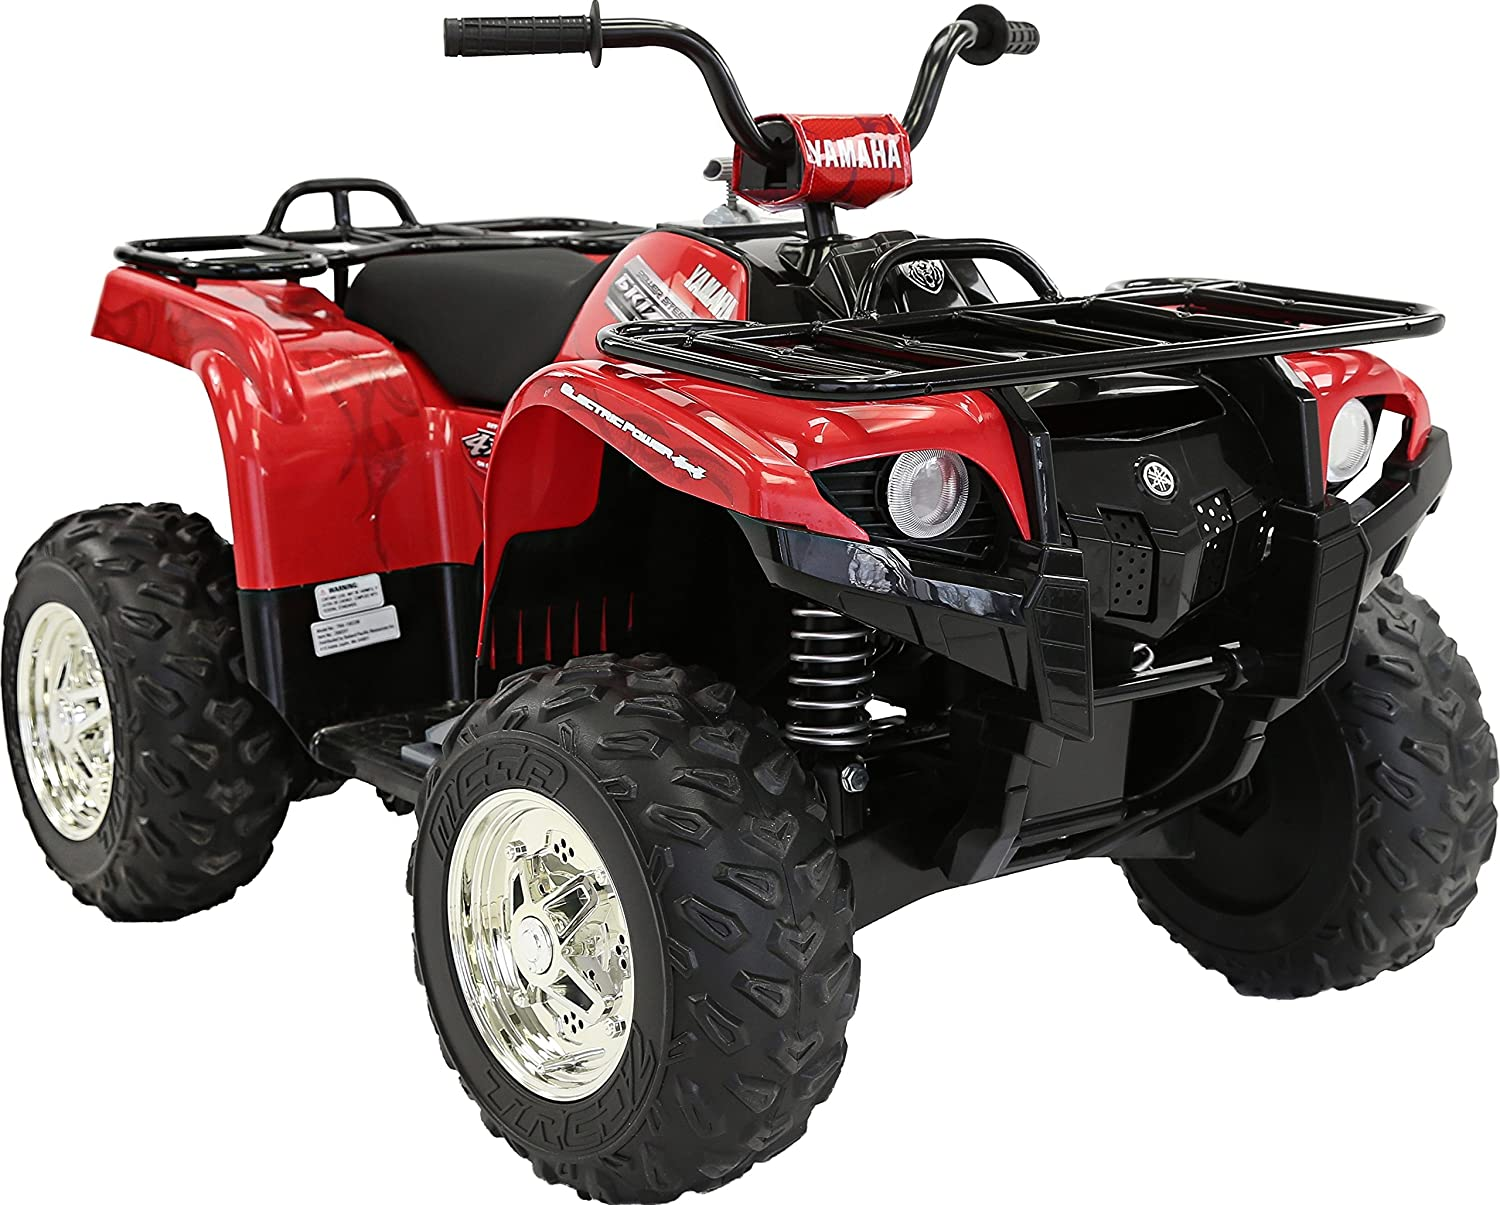 91WBYAzLoTL._SL1500_ amazon com yamaha kids grizzly atv 12v electric ride on quad 50Cc 4 Wheeler Wiring Diagram at aneh.co